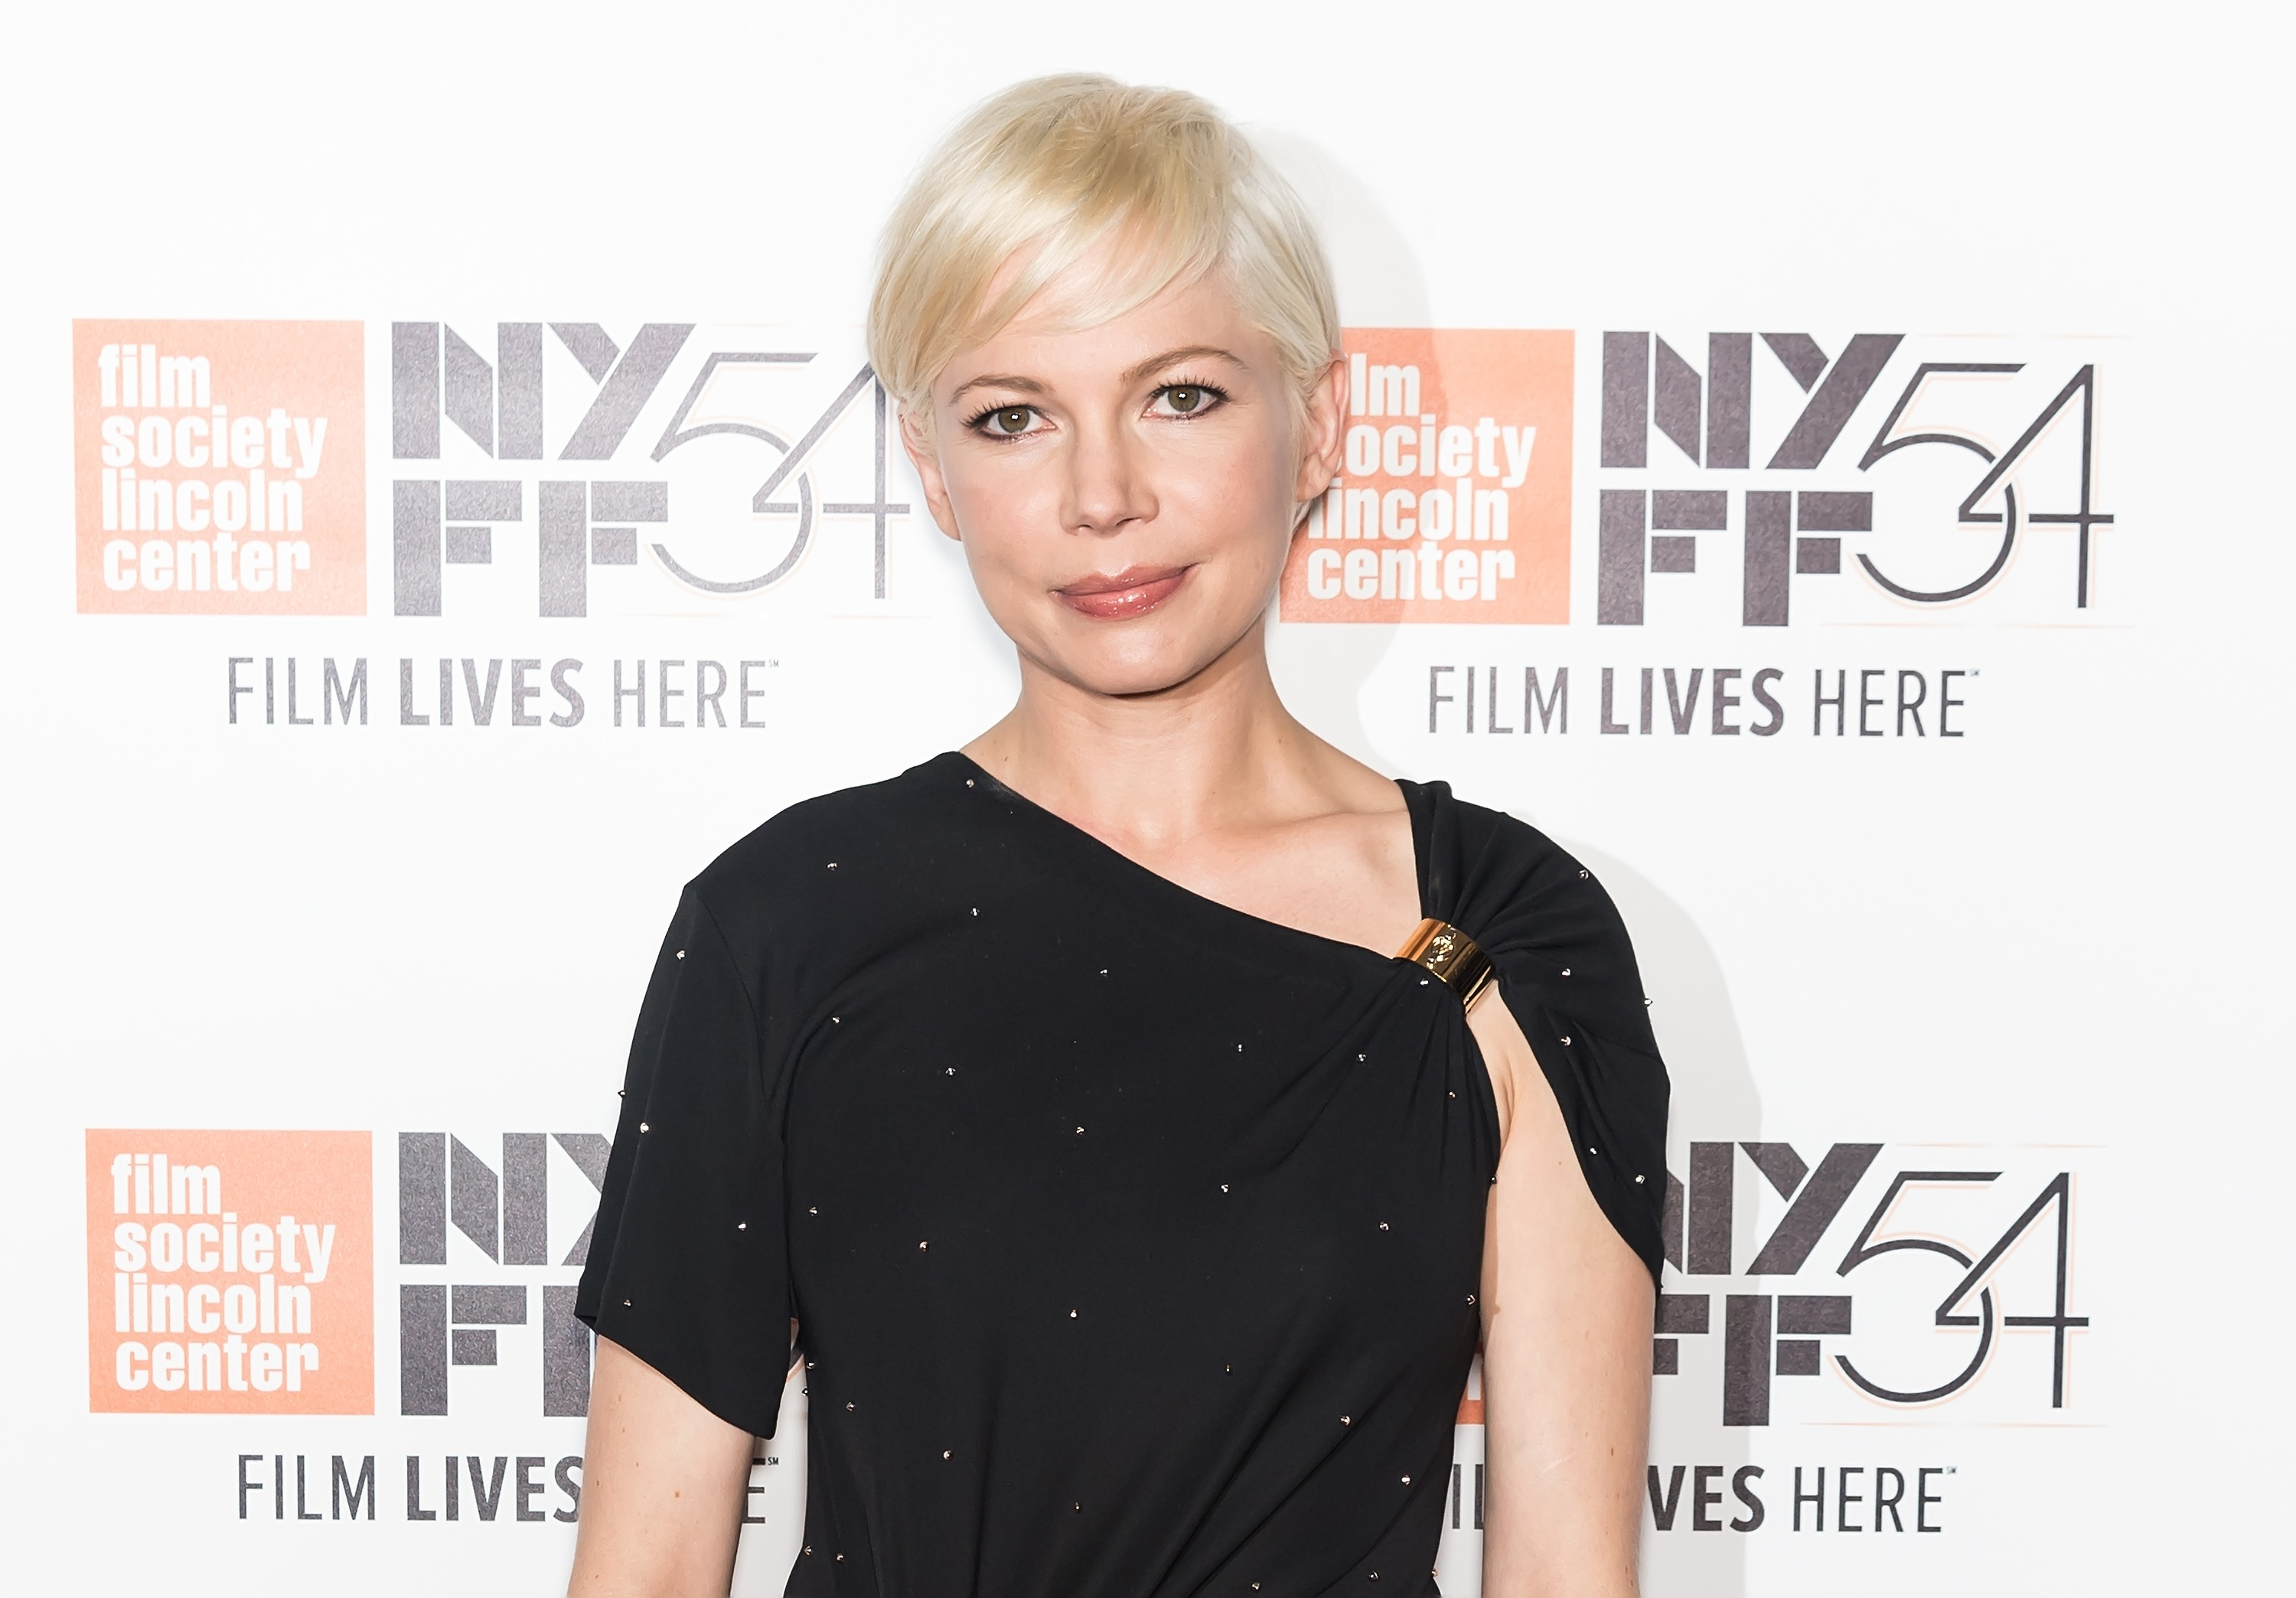 Michelle Williams attends the 'Certain Women' premiere during the 54th New York Film Festival on October 3, 2016 in New York City.